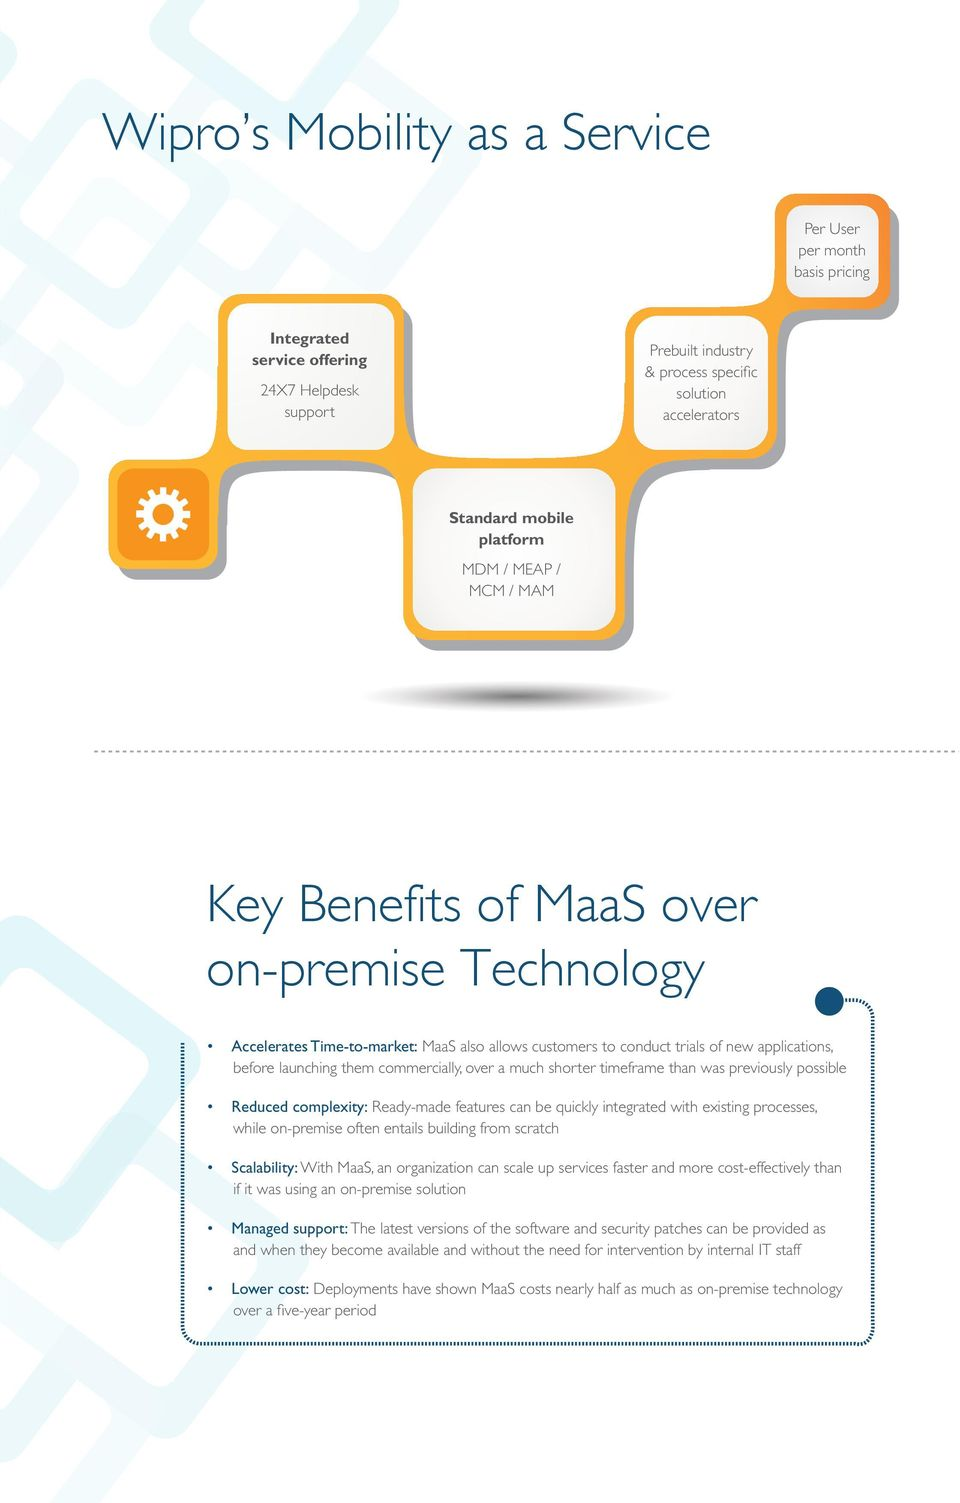 commercially, over a much shorter timeframe than was previously possible Reduced complexity: Ready-made features can be quickly integrated with existing processes, while on-premise often entails